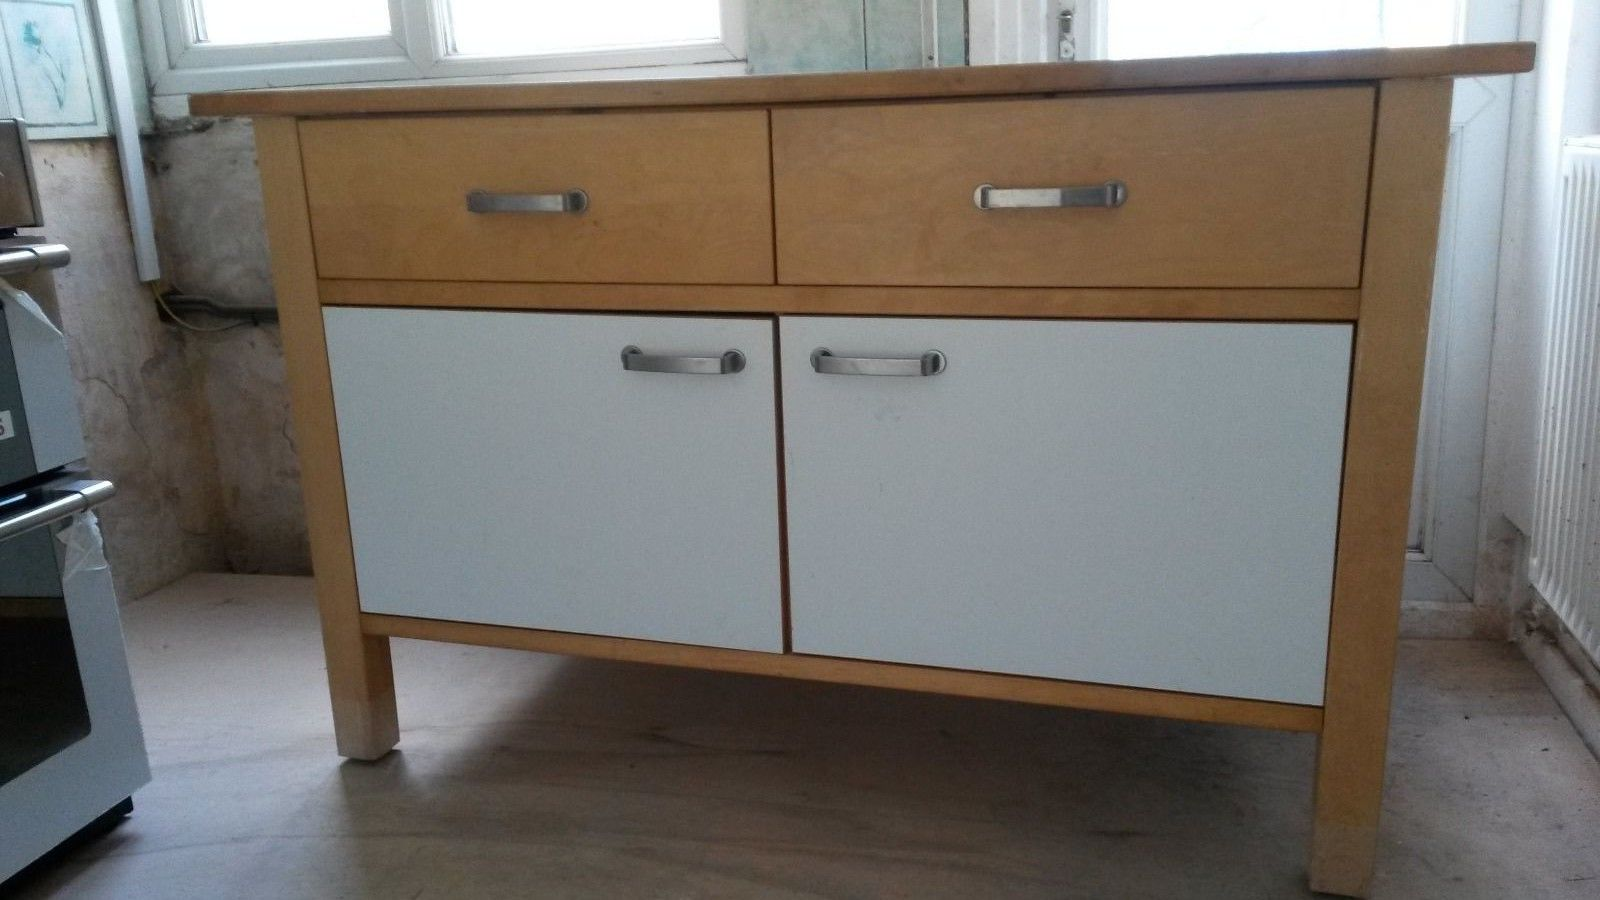 ikea varde kitchen units sold as lot or as individual items free standing kitchen cabinets 57 Freestanding kitchen unit with drawers and cupboard